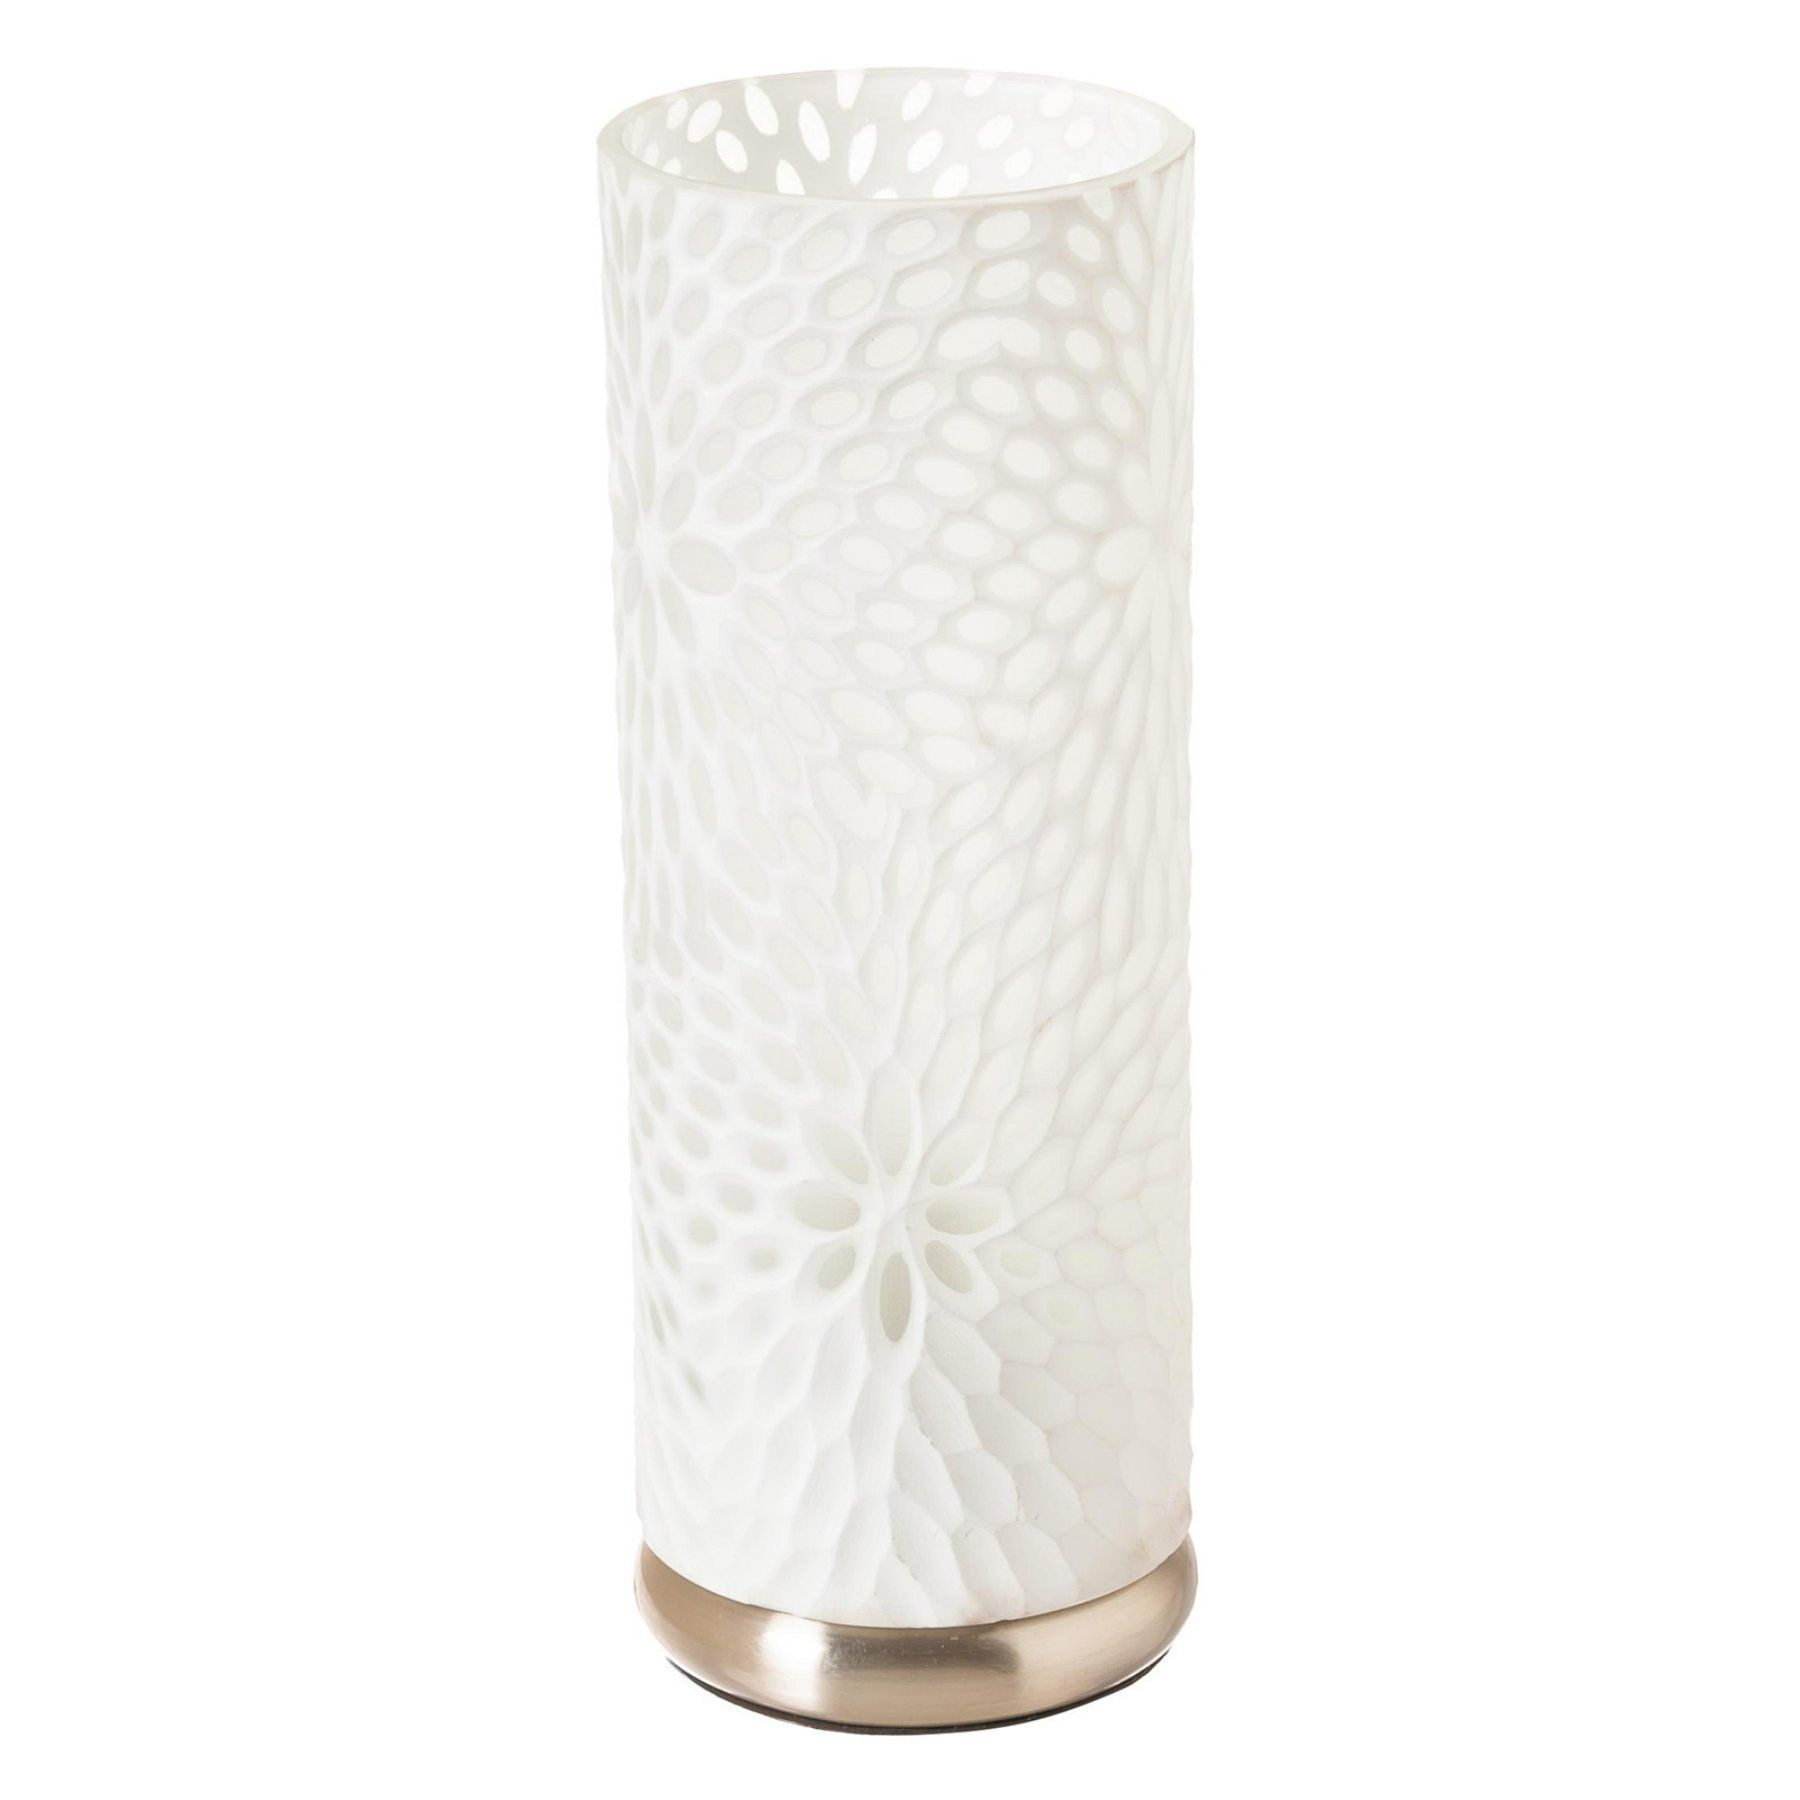 table shades lamp products white cylinder of light jade